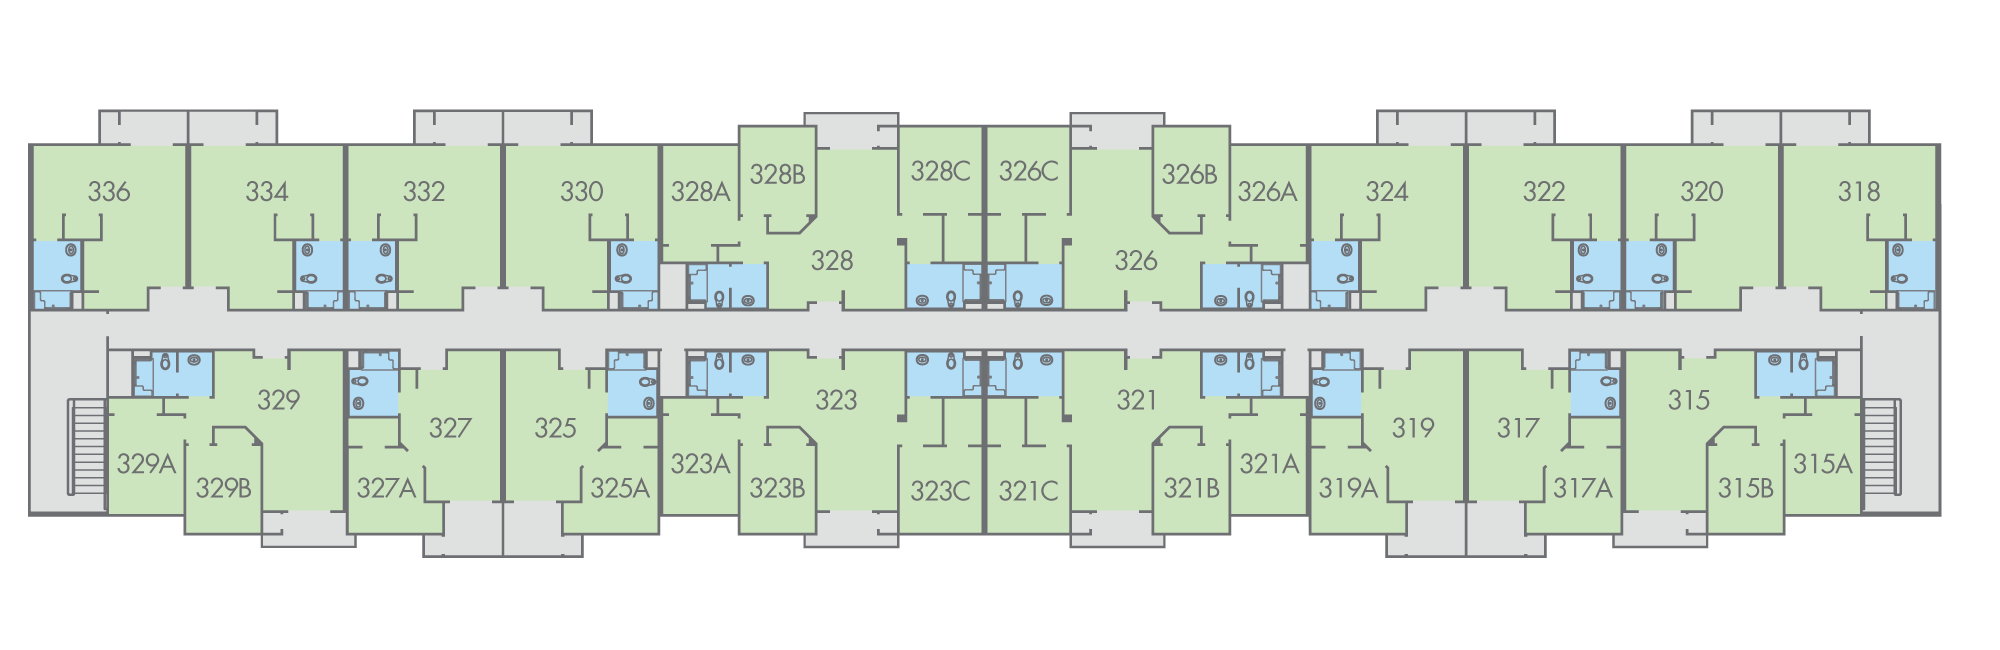 Floor Plan: Primero Grove, Laurel Building, Third Floor